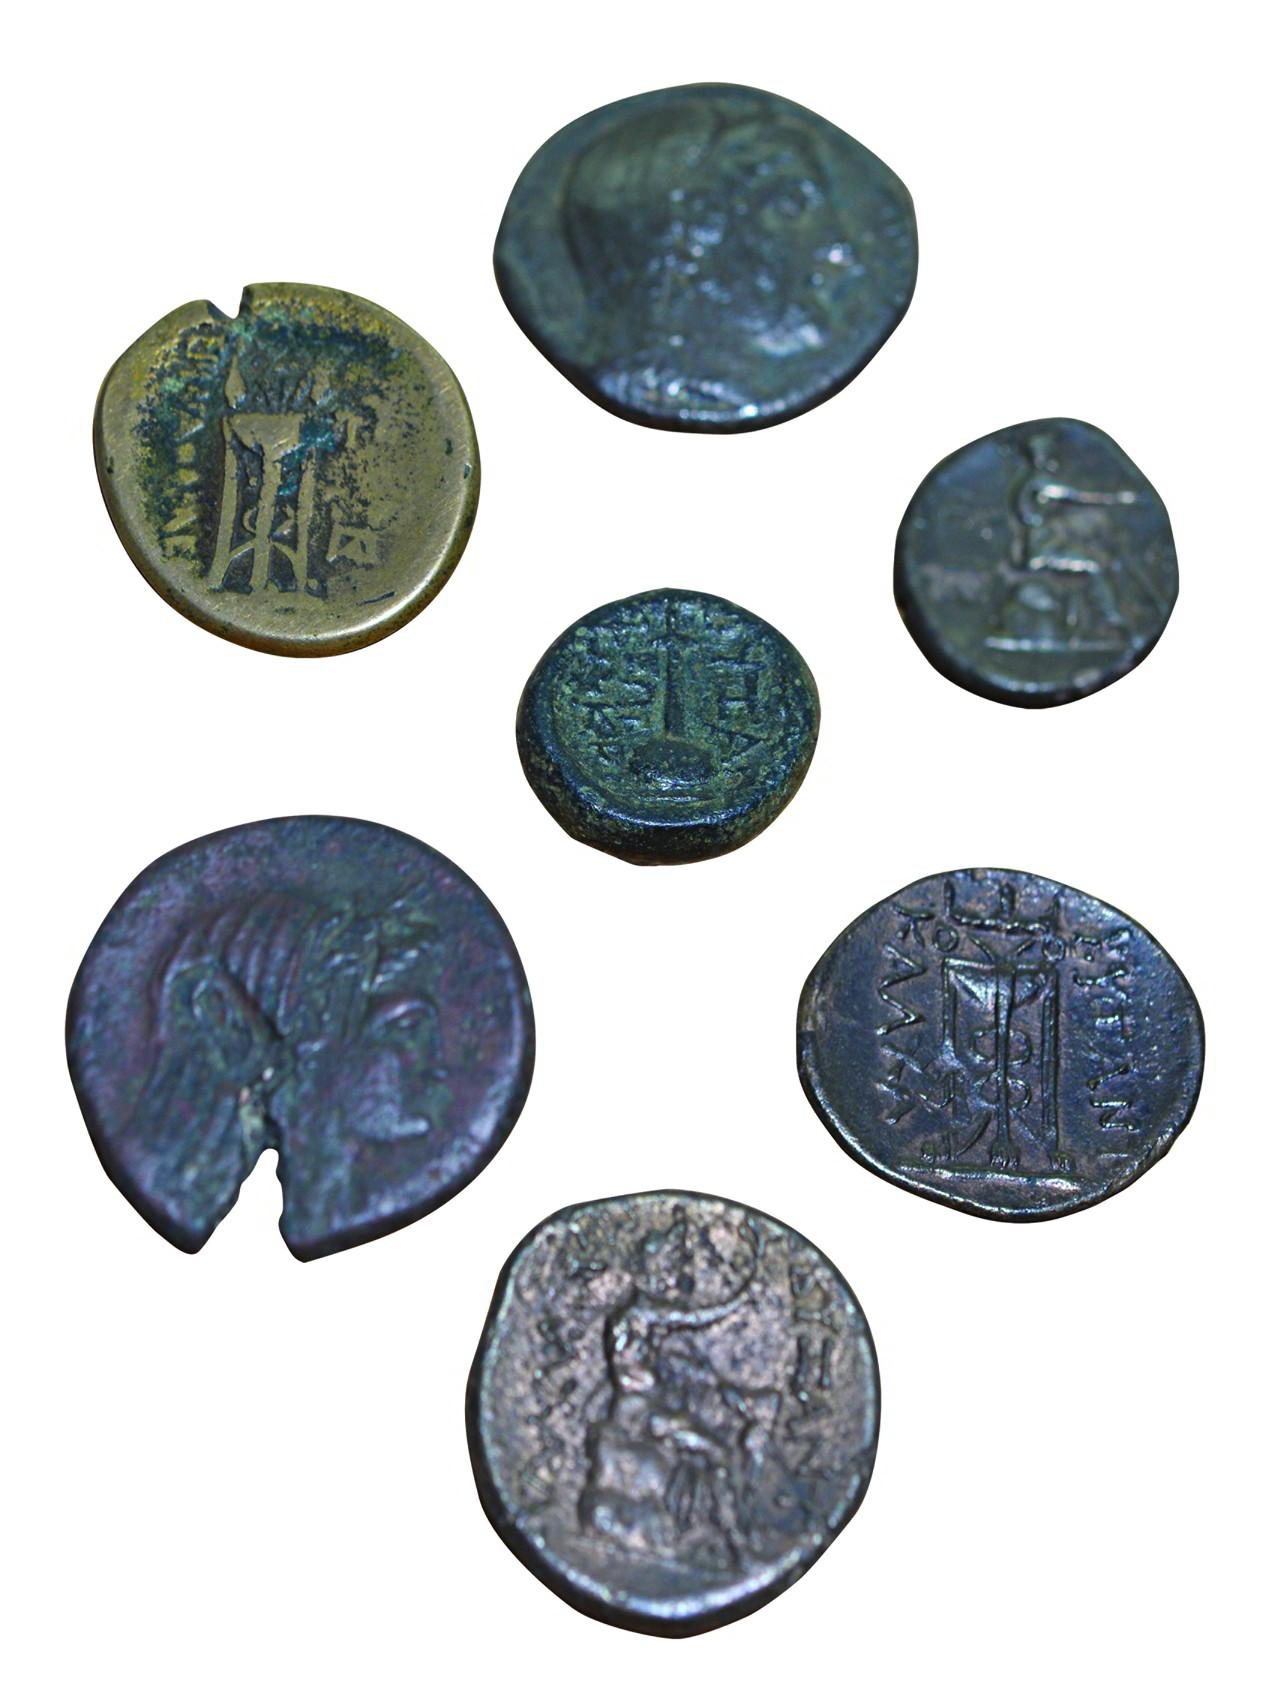 2b- The coins of the city of Byzantium in 3<sup>rd</sup> – 2<sup>nd</sup> century BCE (Istanbul Archeology Museum, Coins Section)